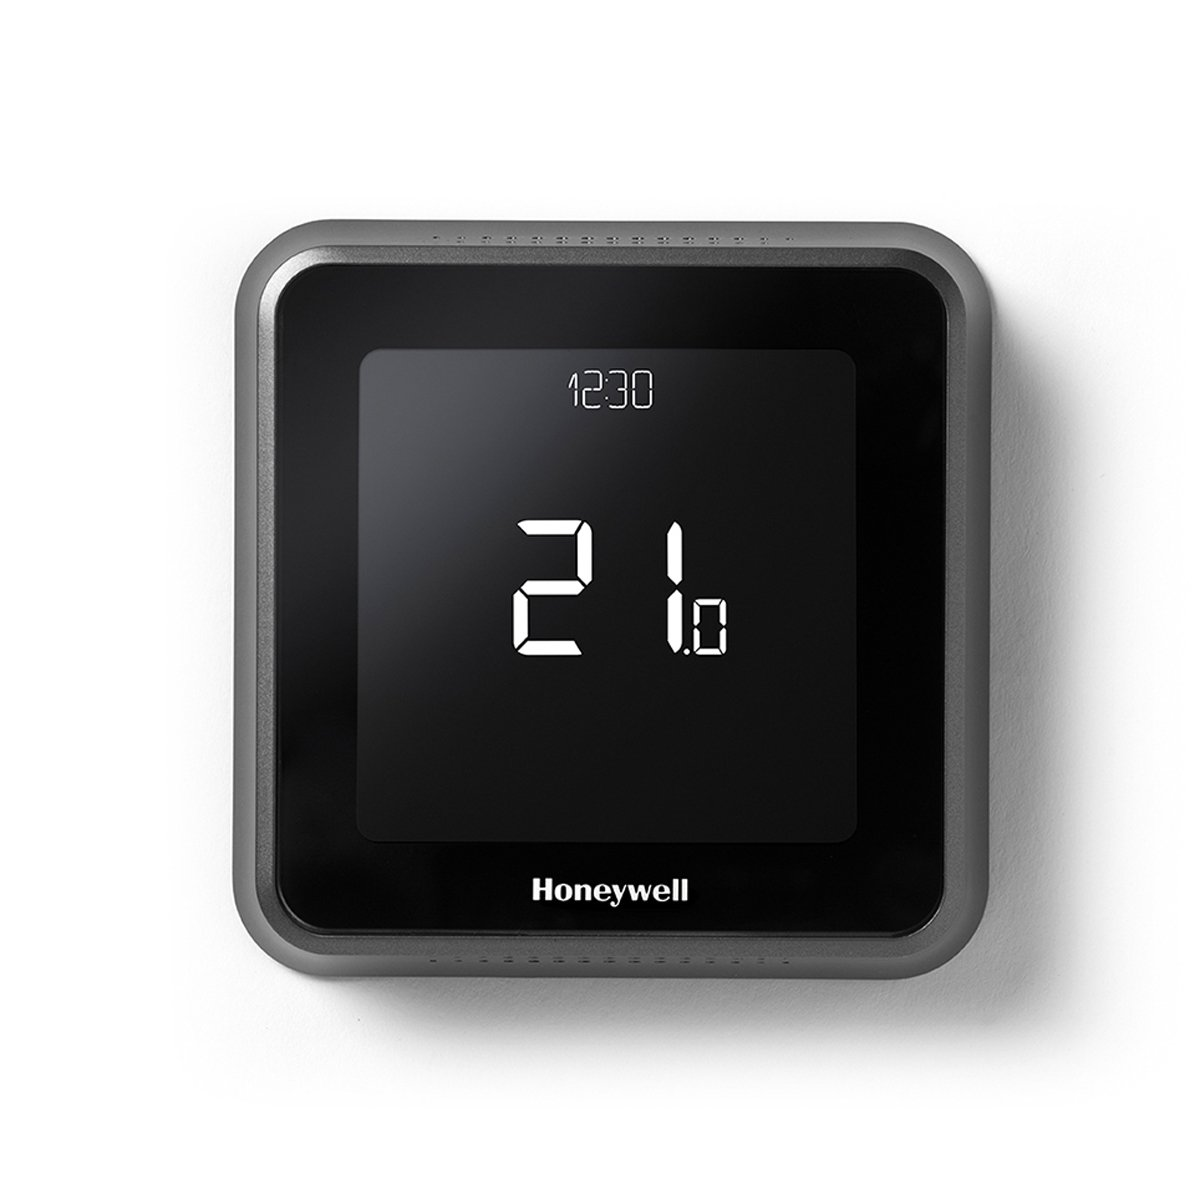 Honeywell Lyric T6 Wired Smart Internet Enabled Thermostat Works Wiring Guide For Domestic Heating Systems By Free Download With Alexa Diy Tools